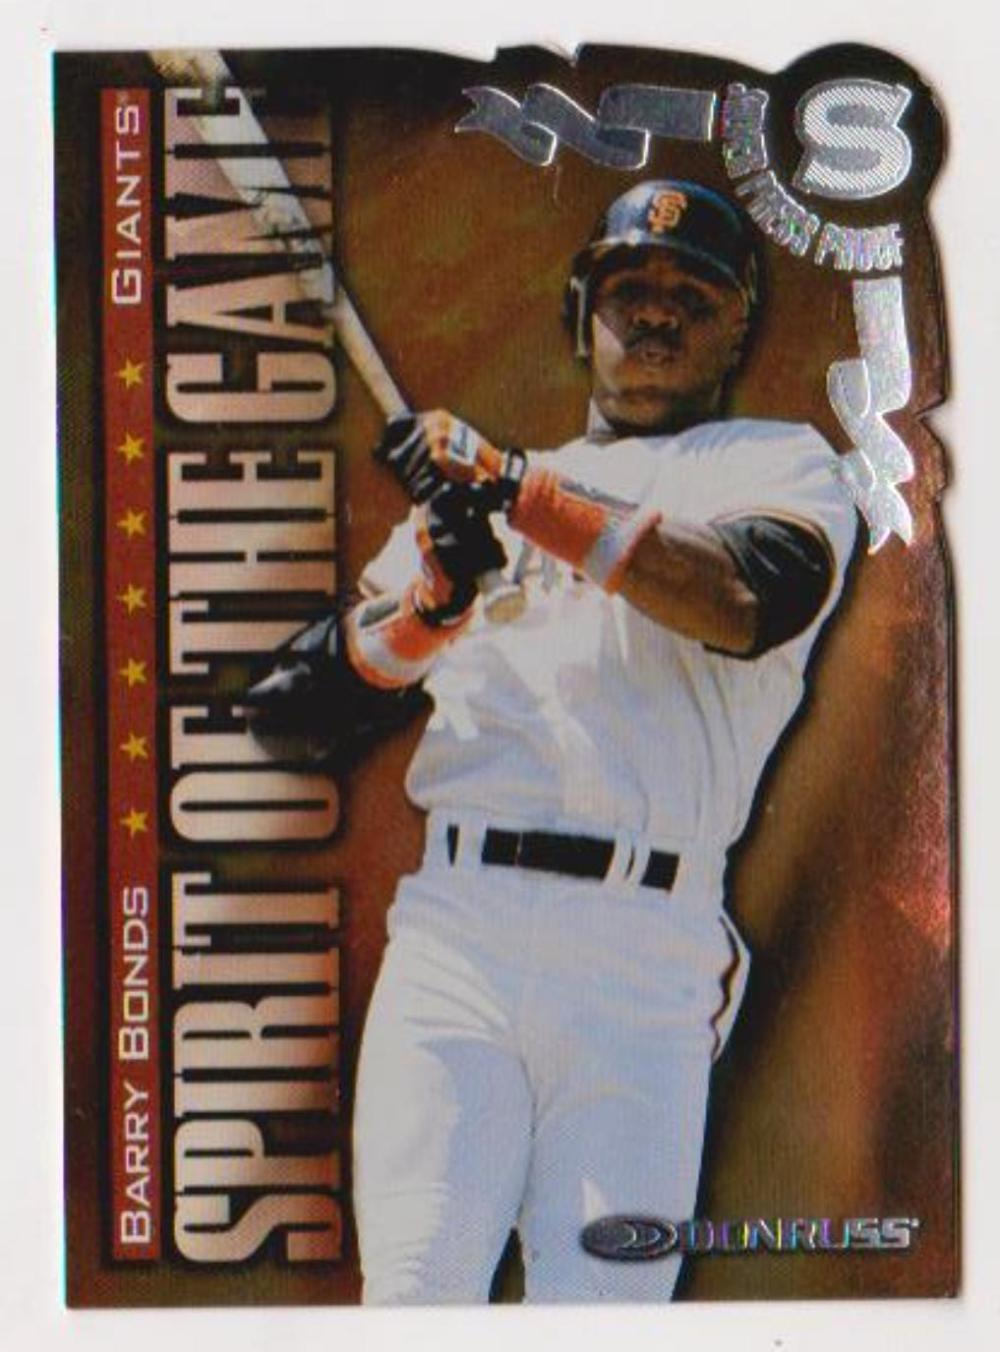 1998 Donruss Silver Press Proof Barry Bonds #414 Insert Card (1 of 1500)